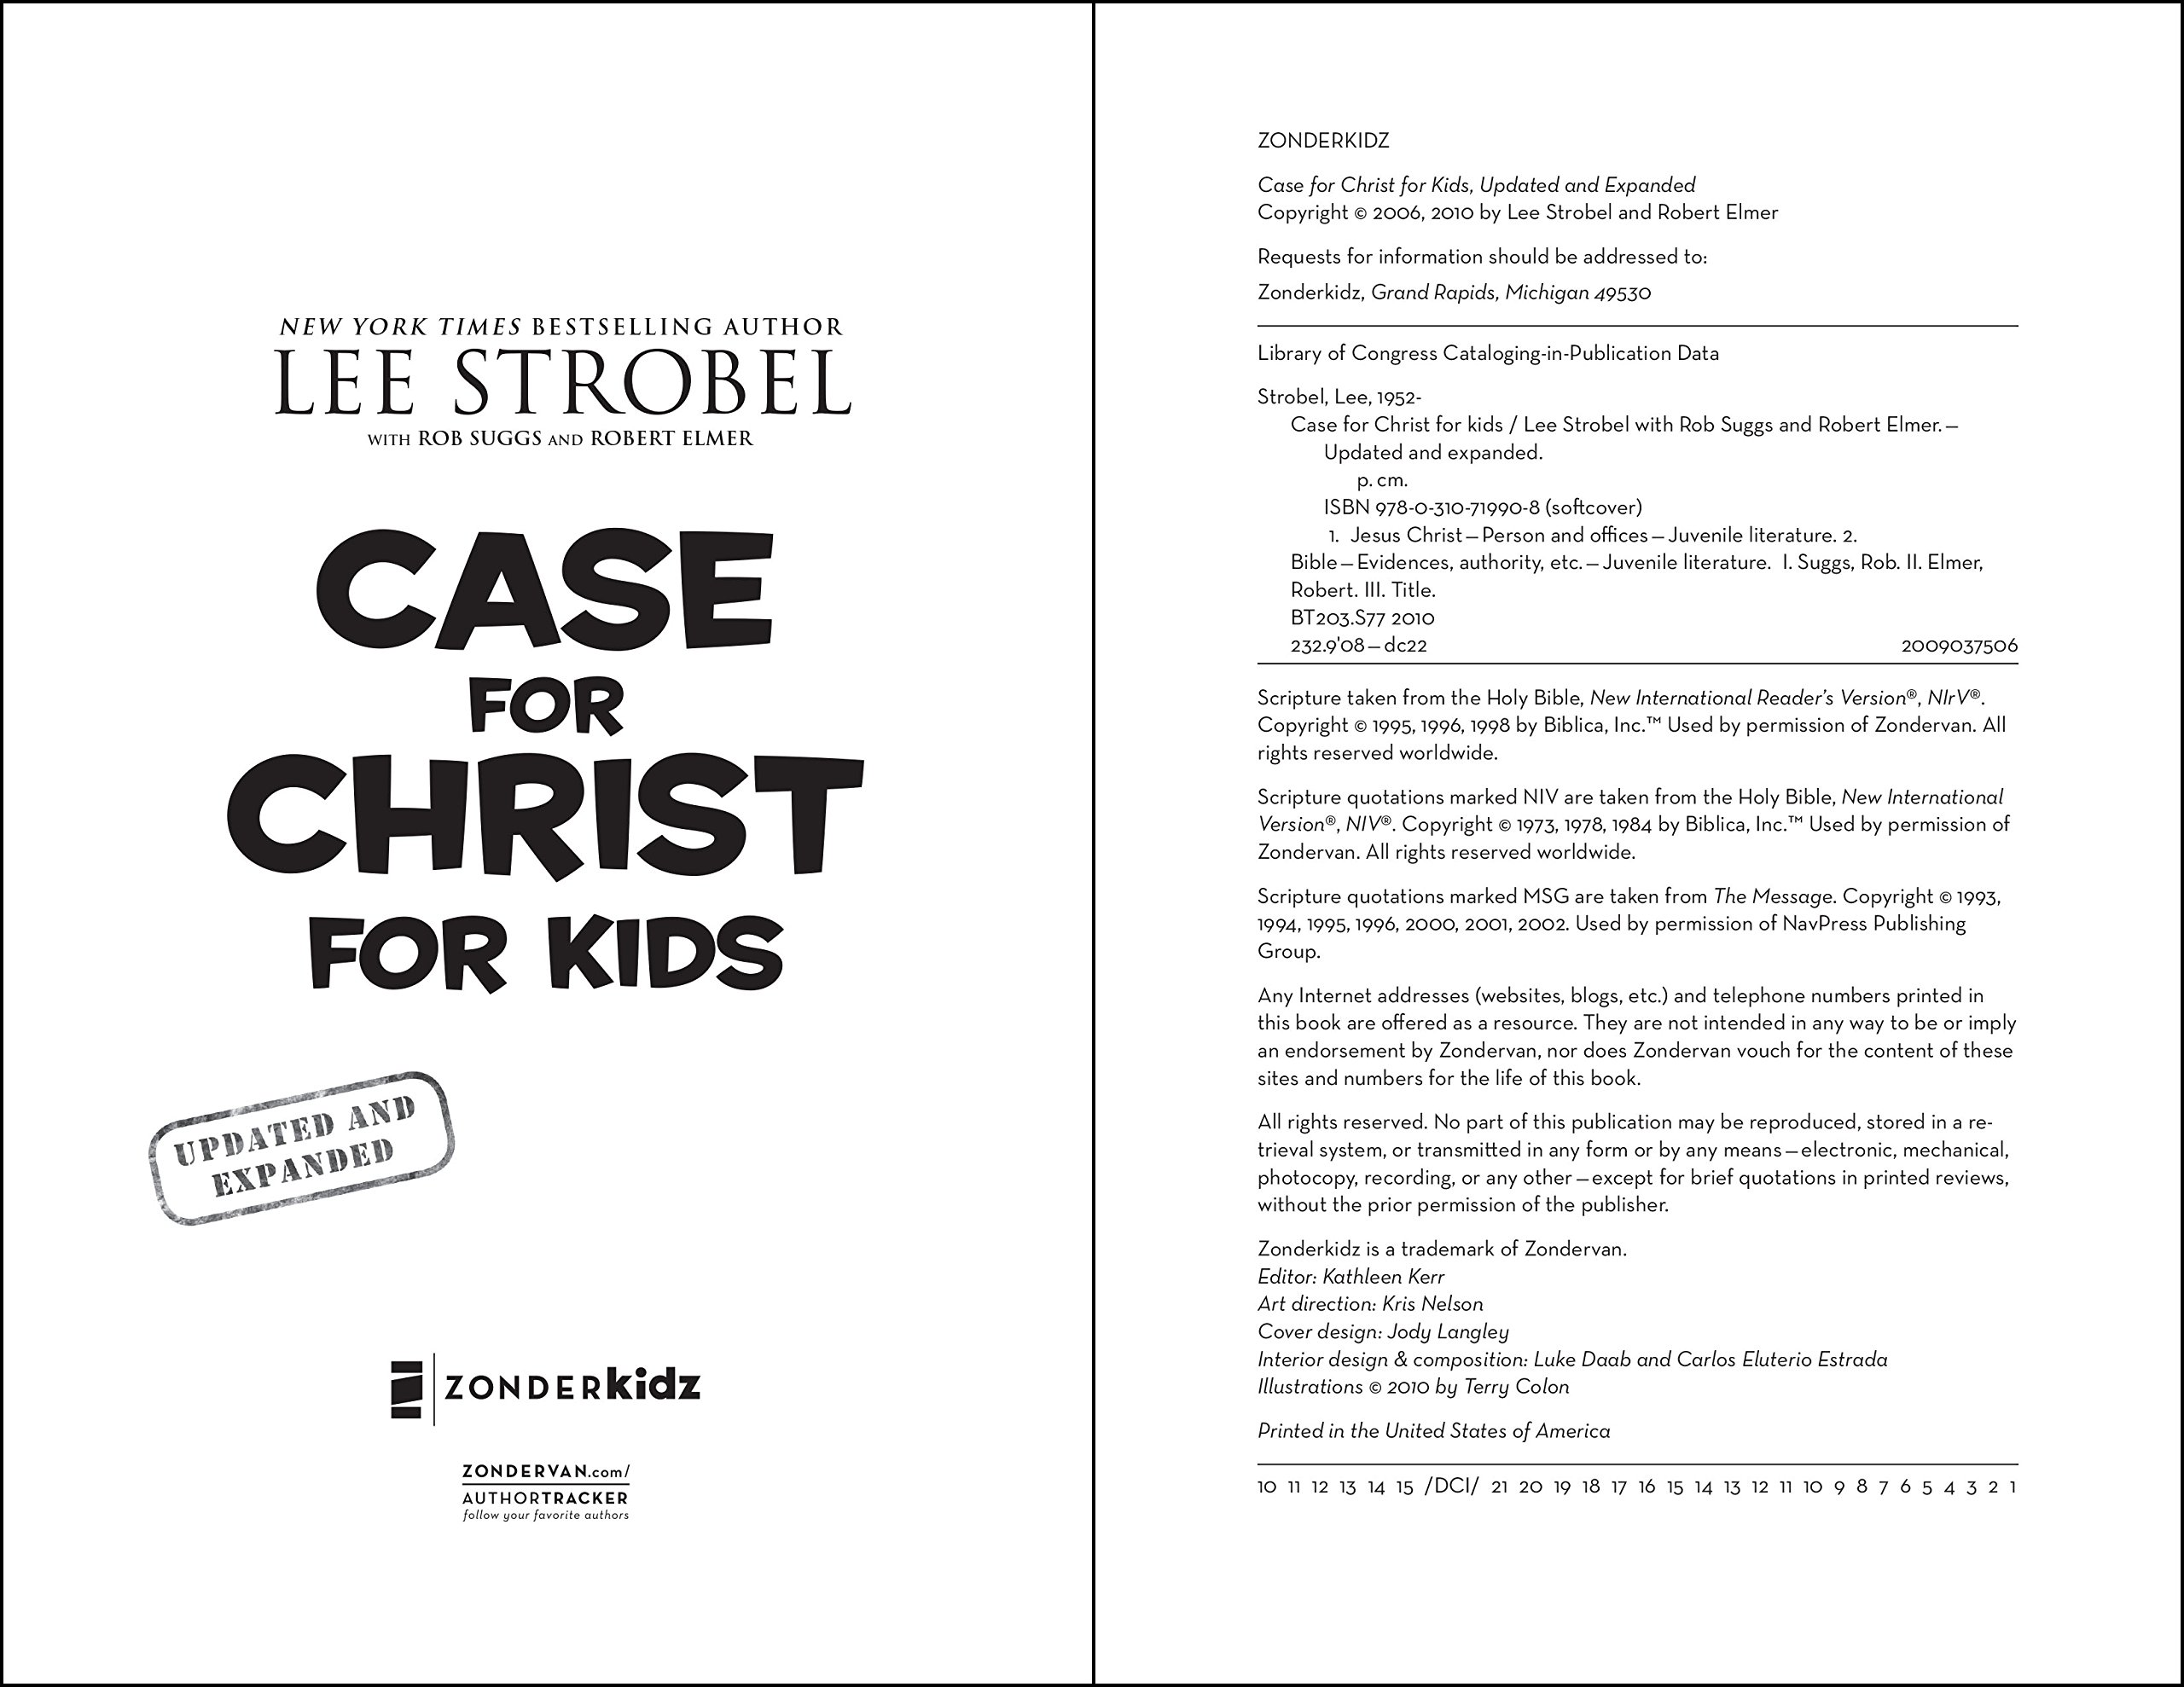 case for christ for kids case for series for kids lee